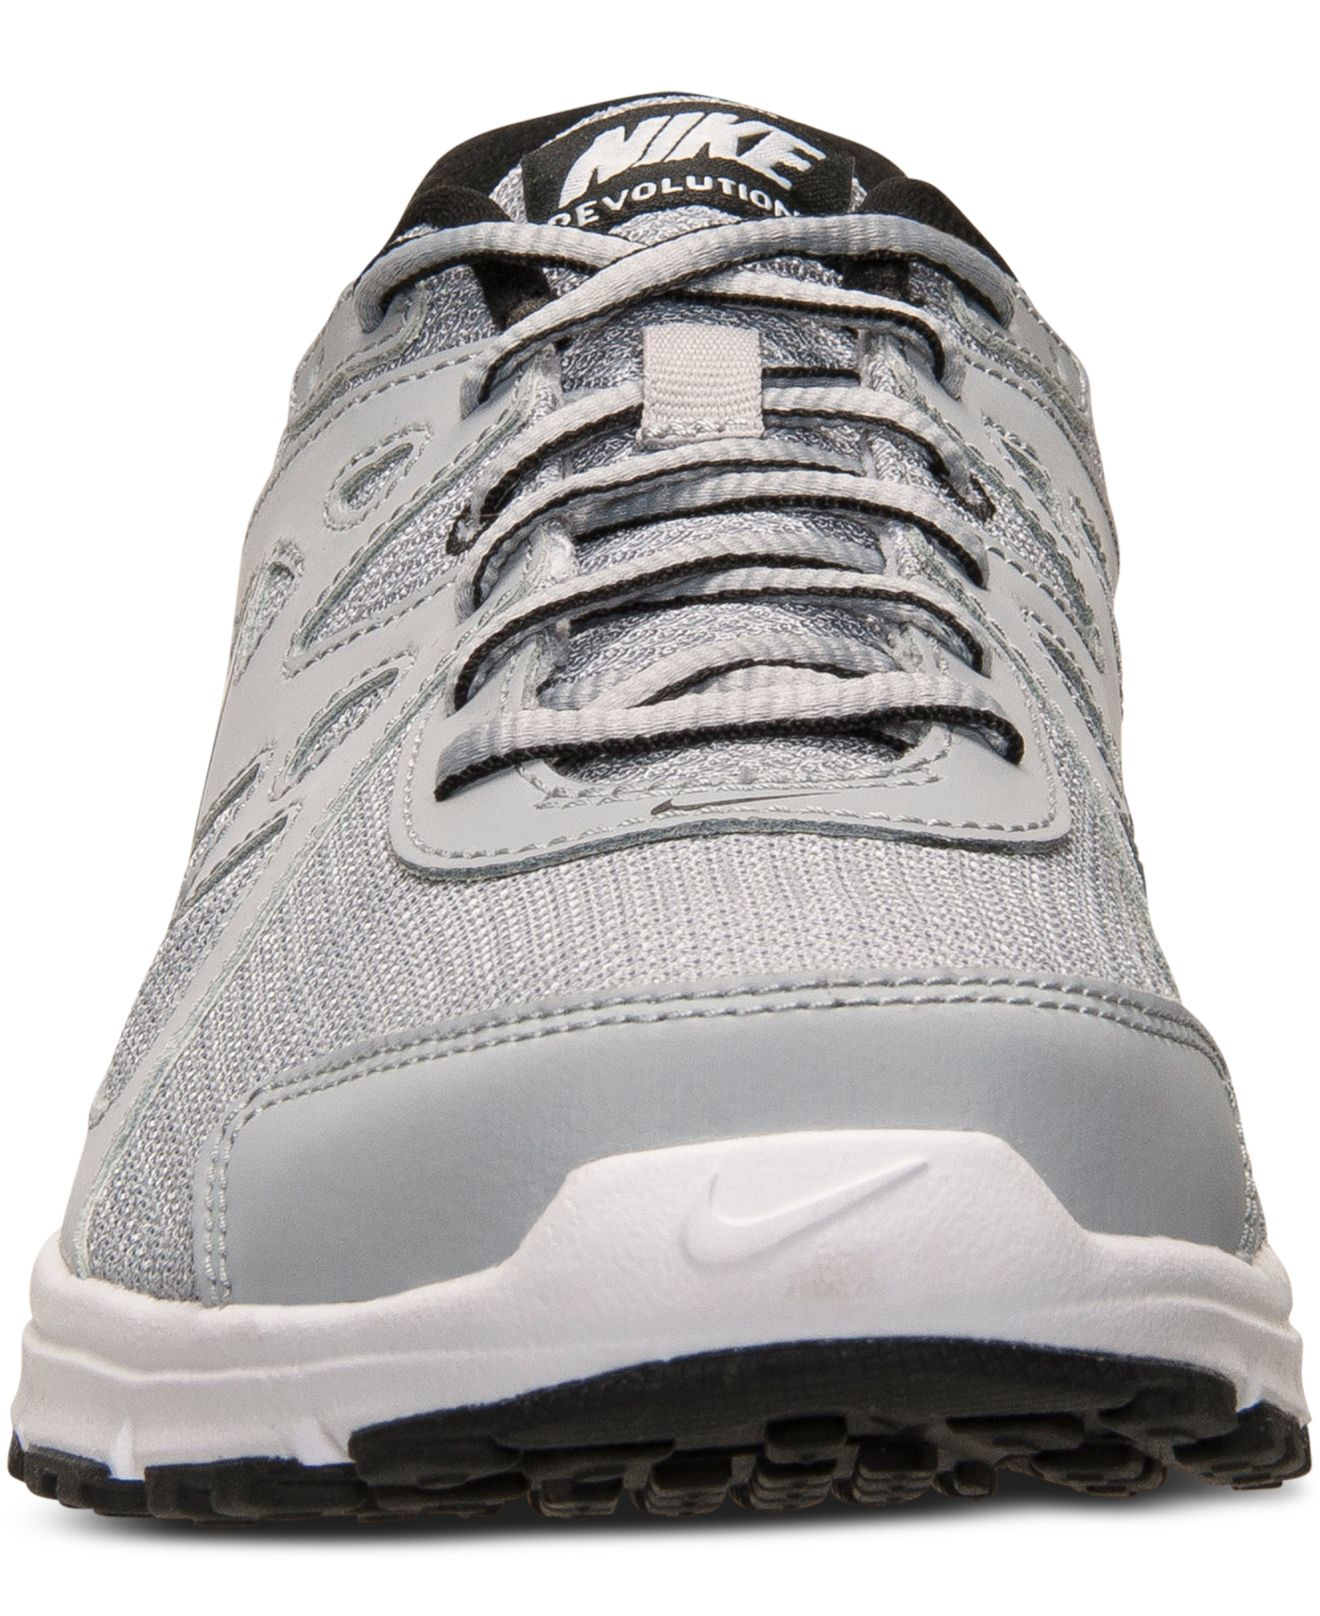 5b94c6f7f7c Lyst - Nike Men s Revolution 2 Running Sneakers From Finish Line in ...